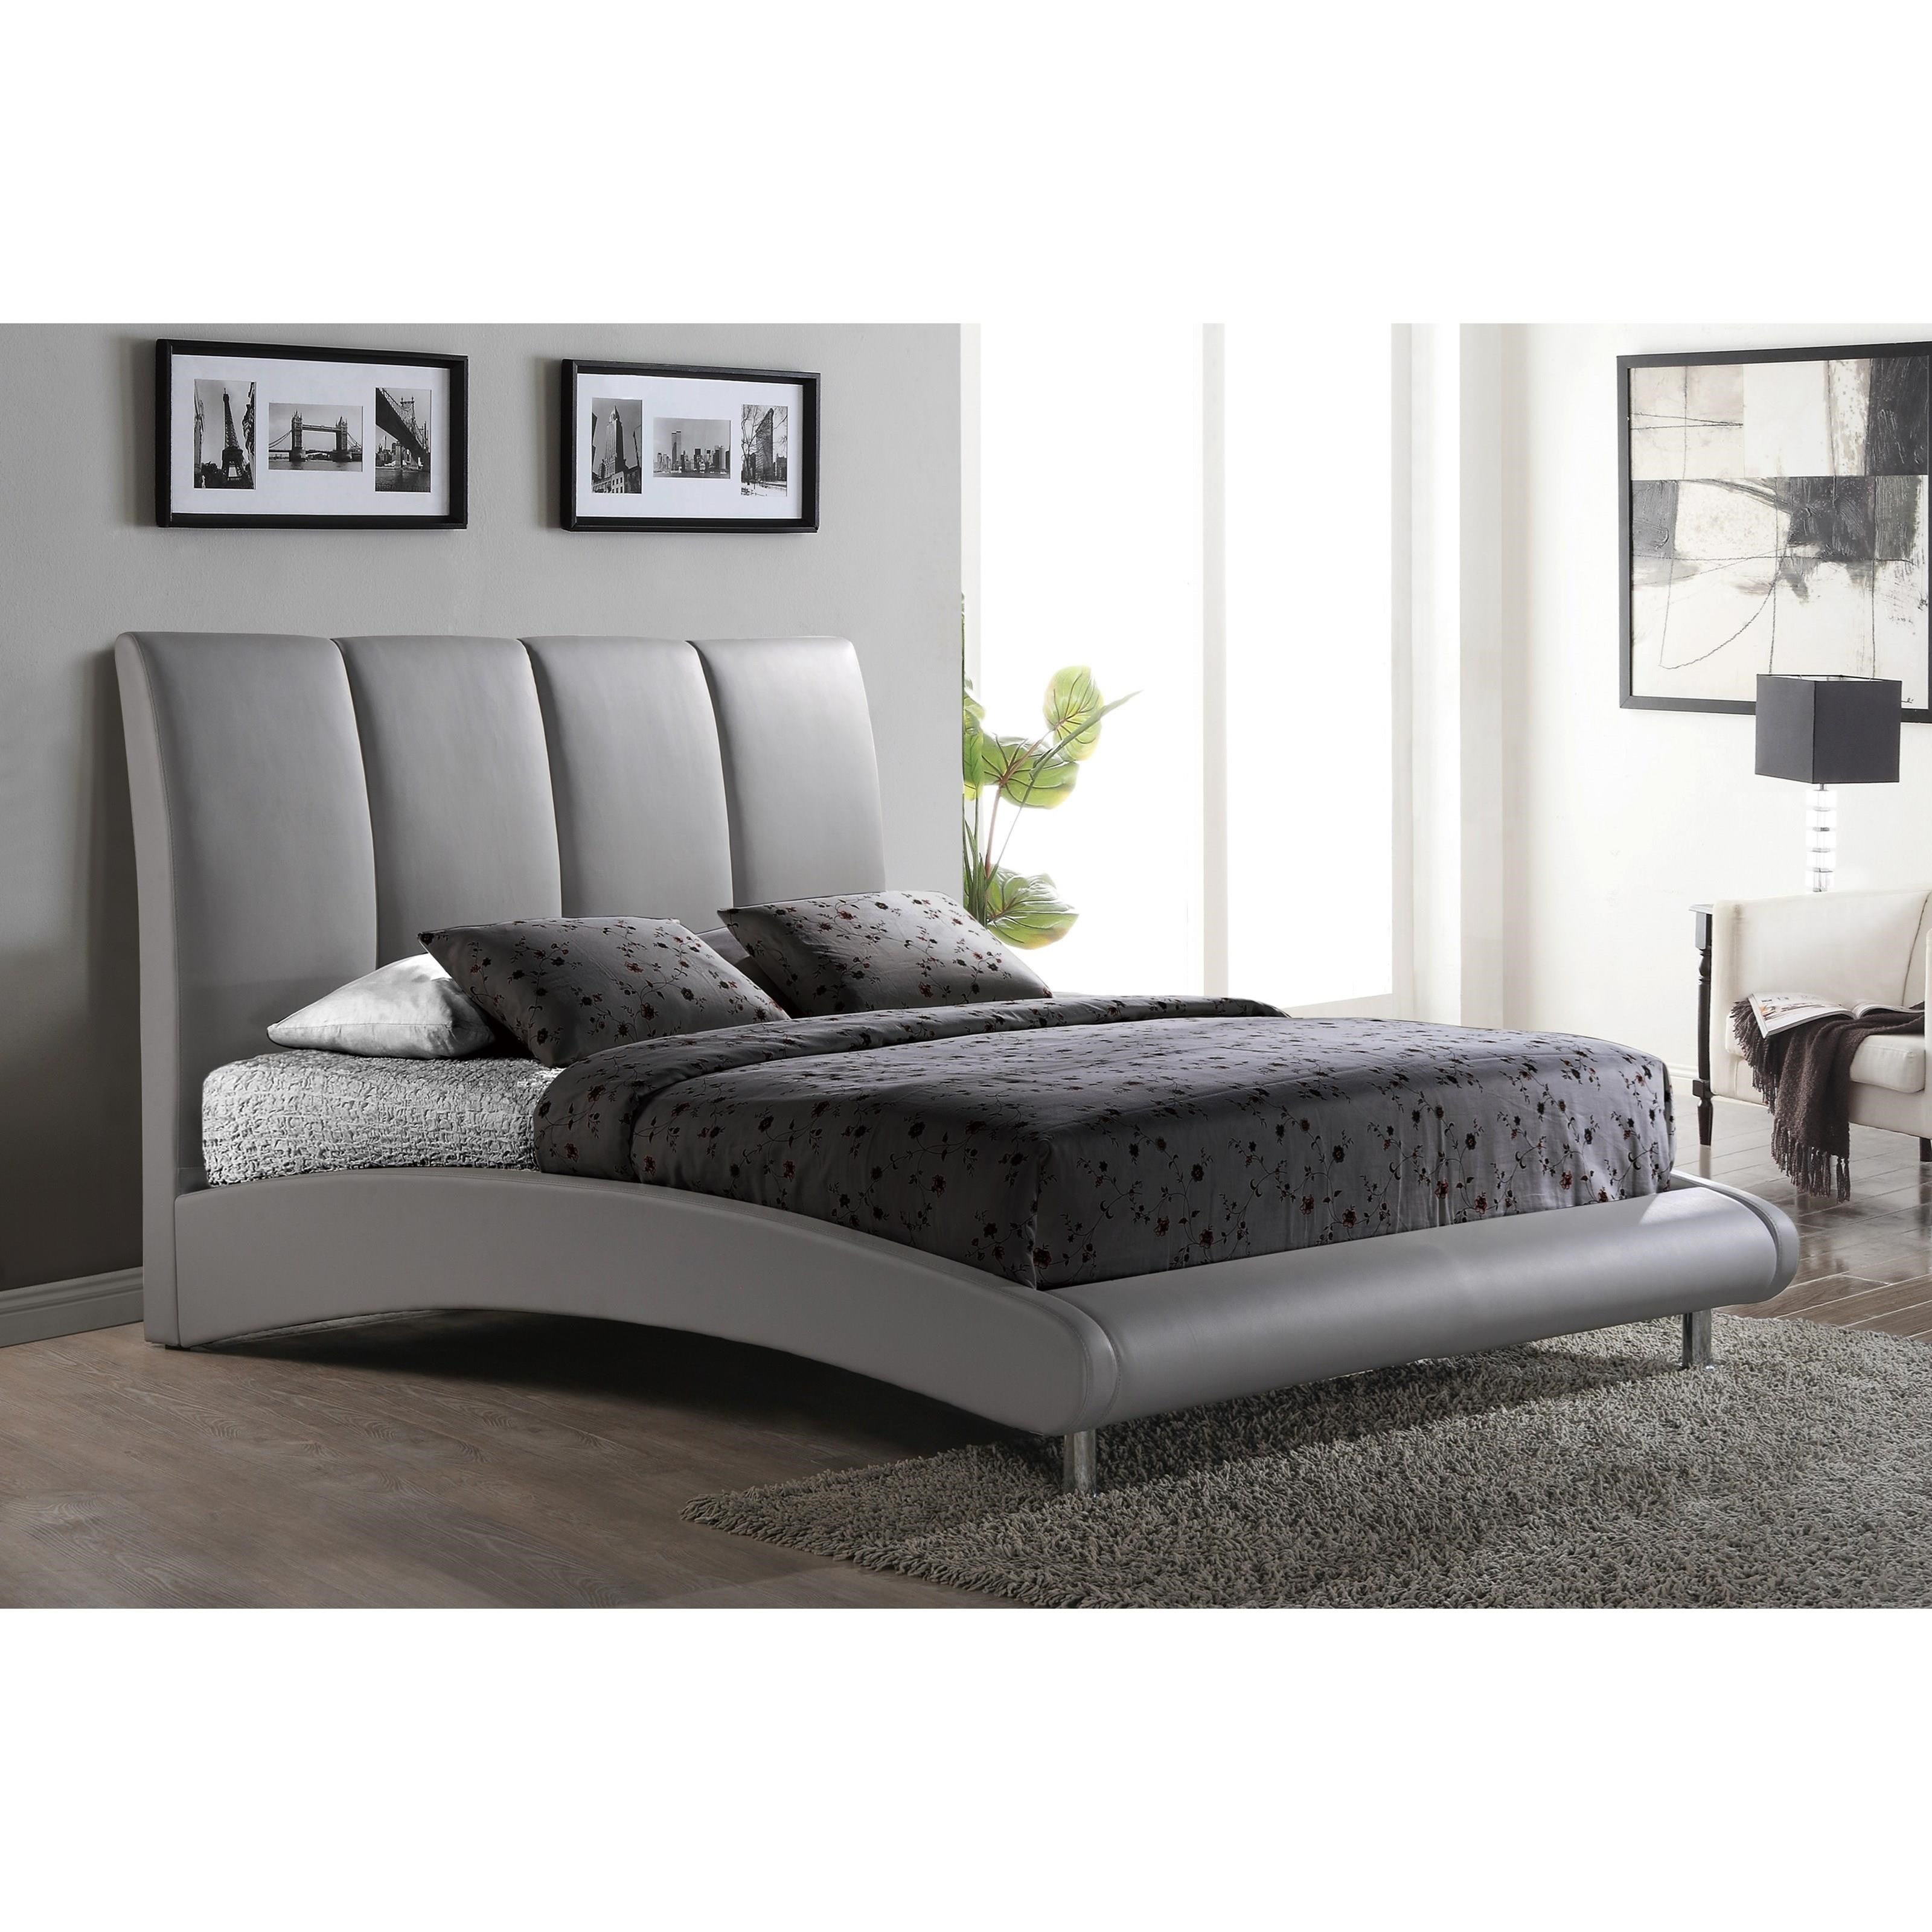 8272 Arched King Bed by Global Furniture at Dream Home Interiors